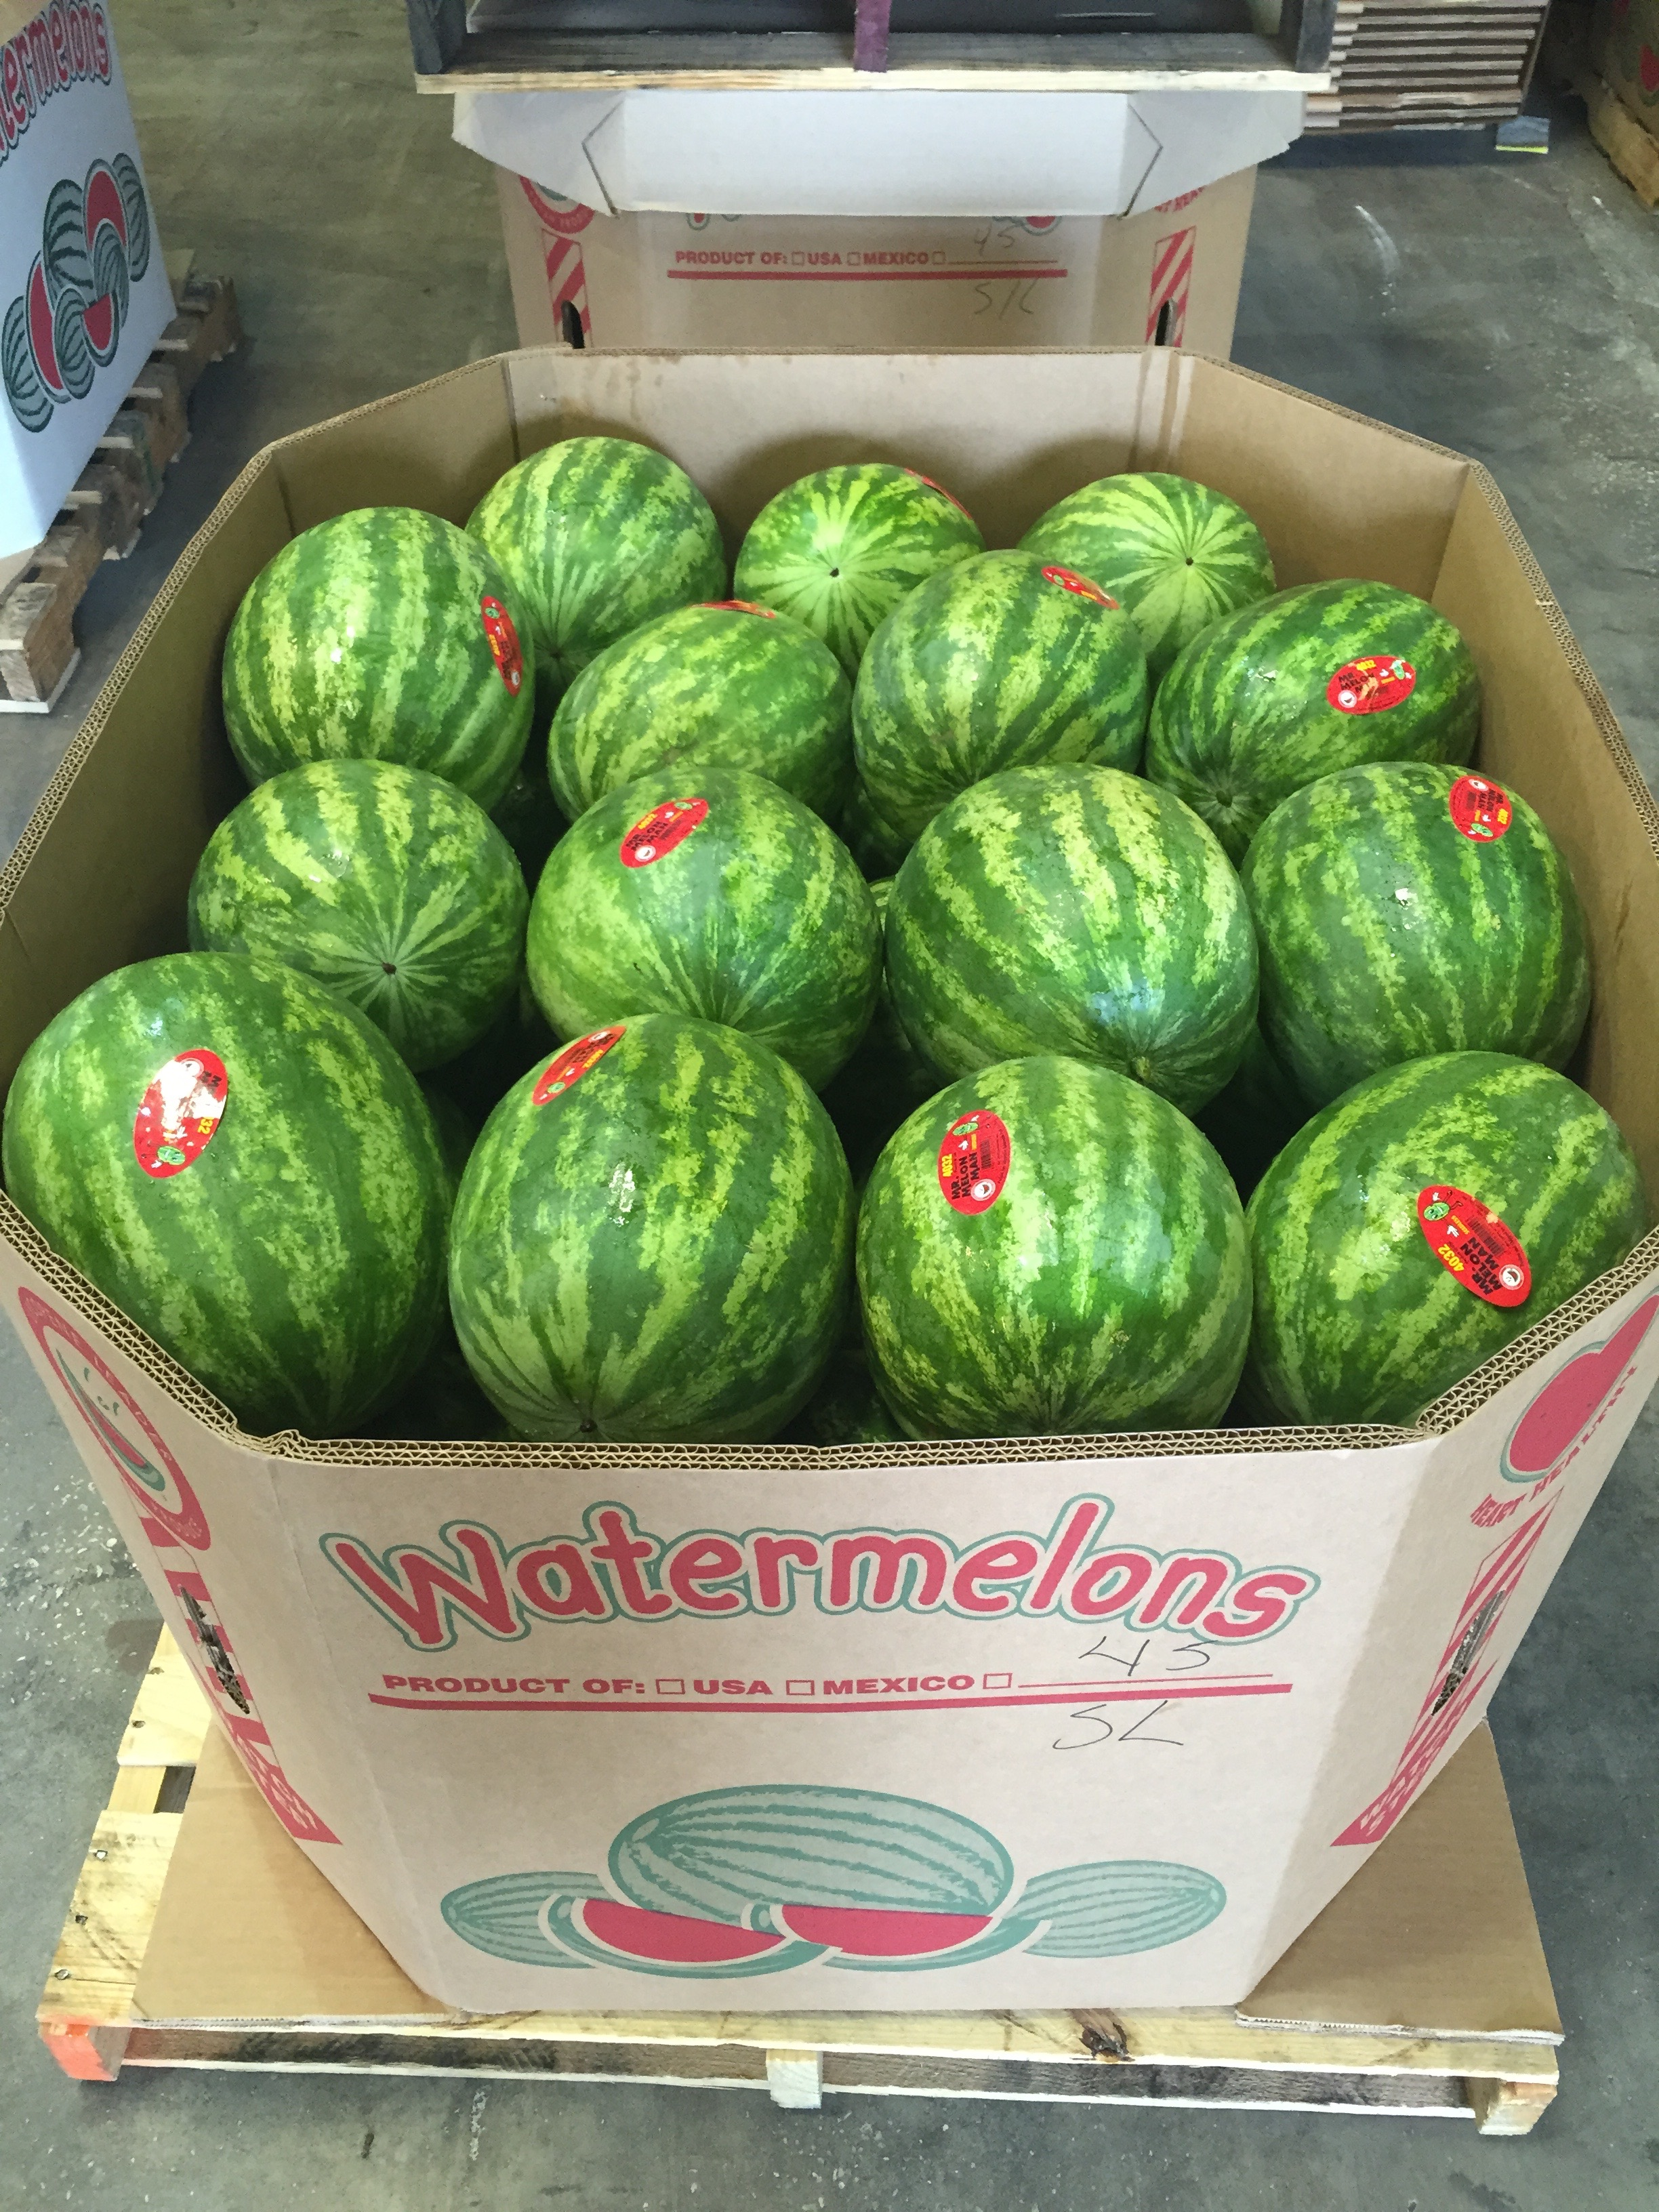 Seedless Watermelons ready for retai